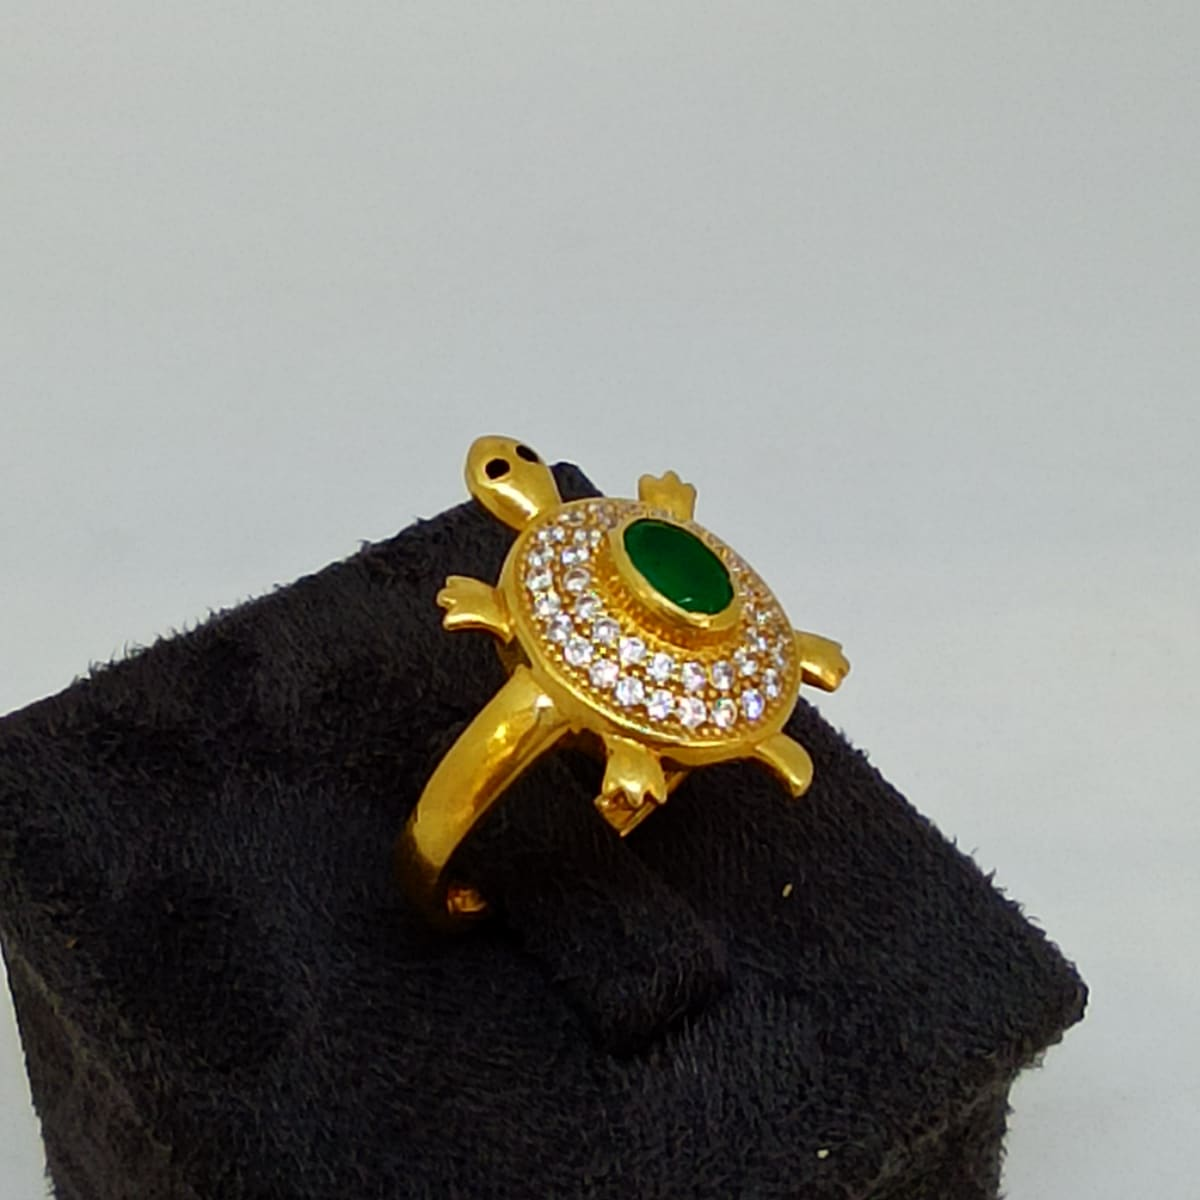 Emrald Turtle Ring